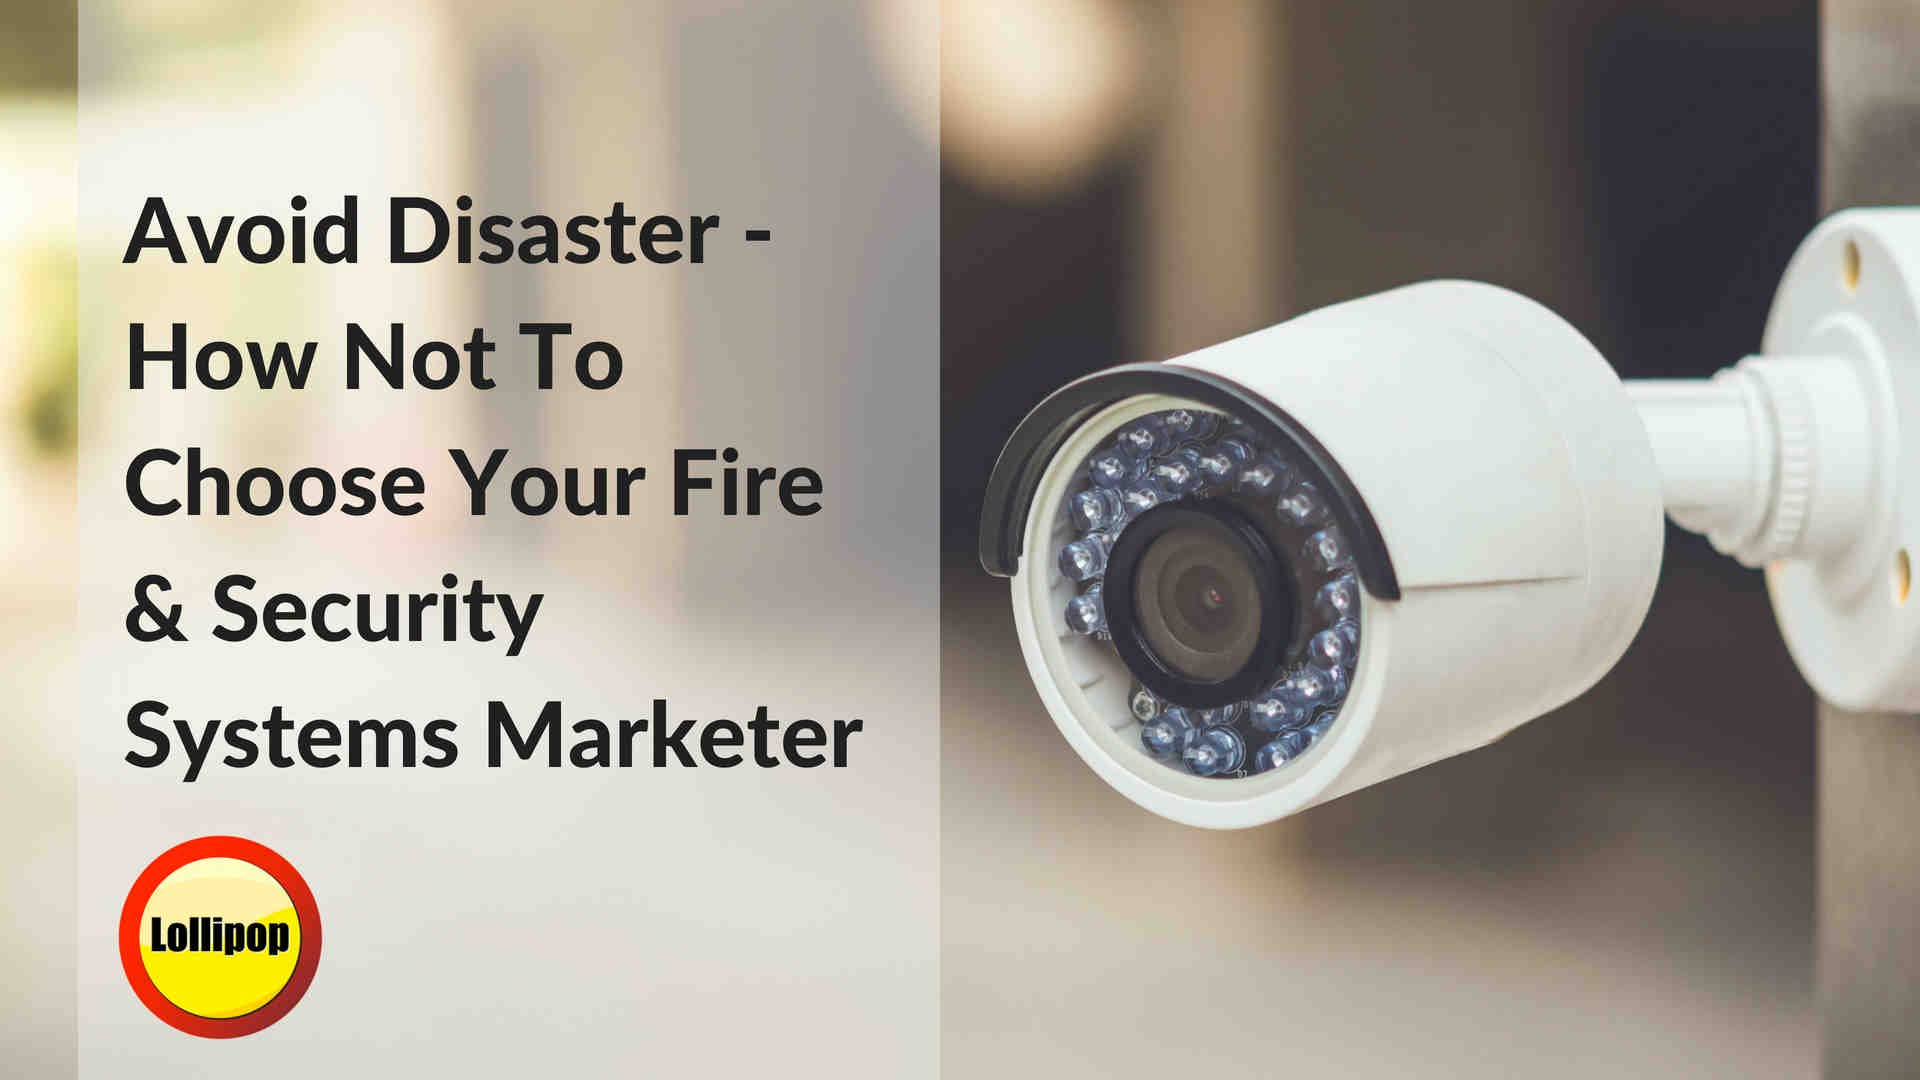 Avoid Disaster - How Not To Choose Your Fire & Security Systems Marketer